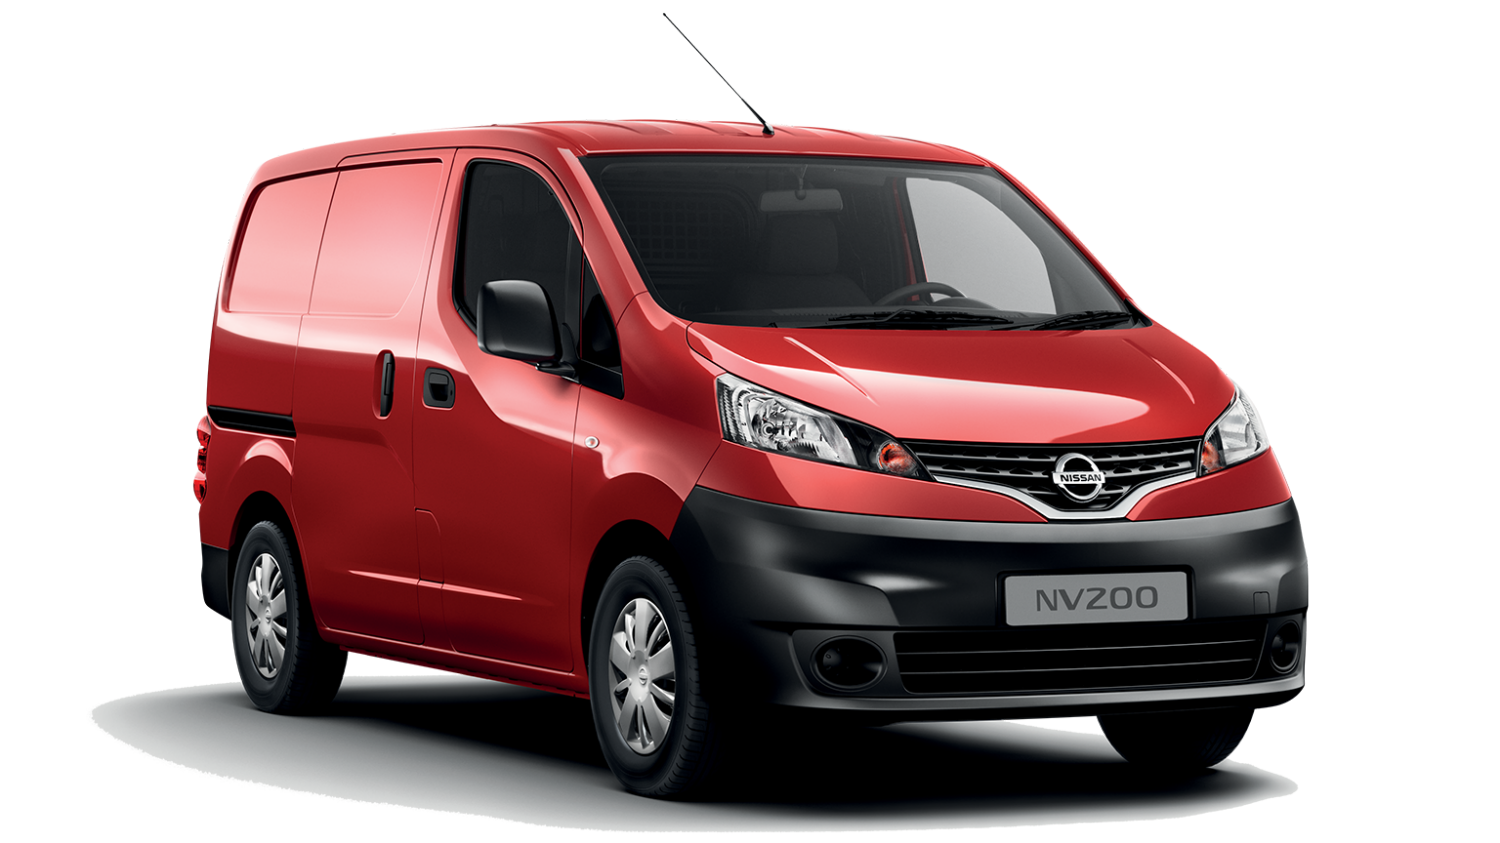 prix caract ristiques nissan nv200 fourgonnette nissan. Black Bedroom Furniture Sets. Home Design Ideas